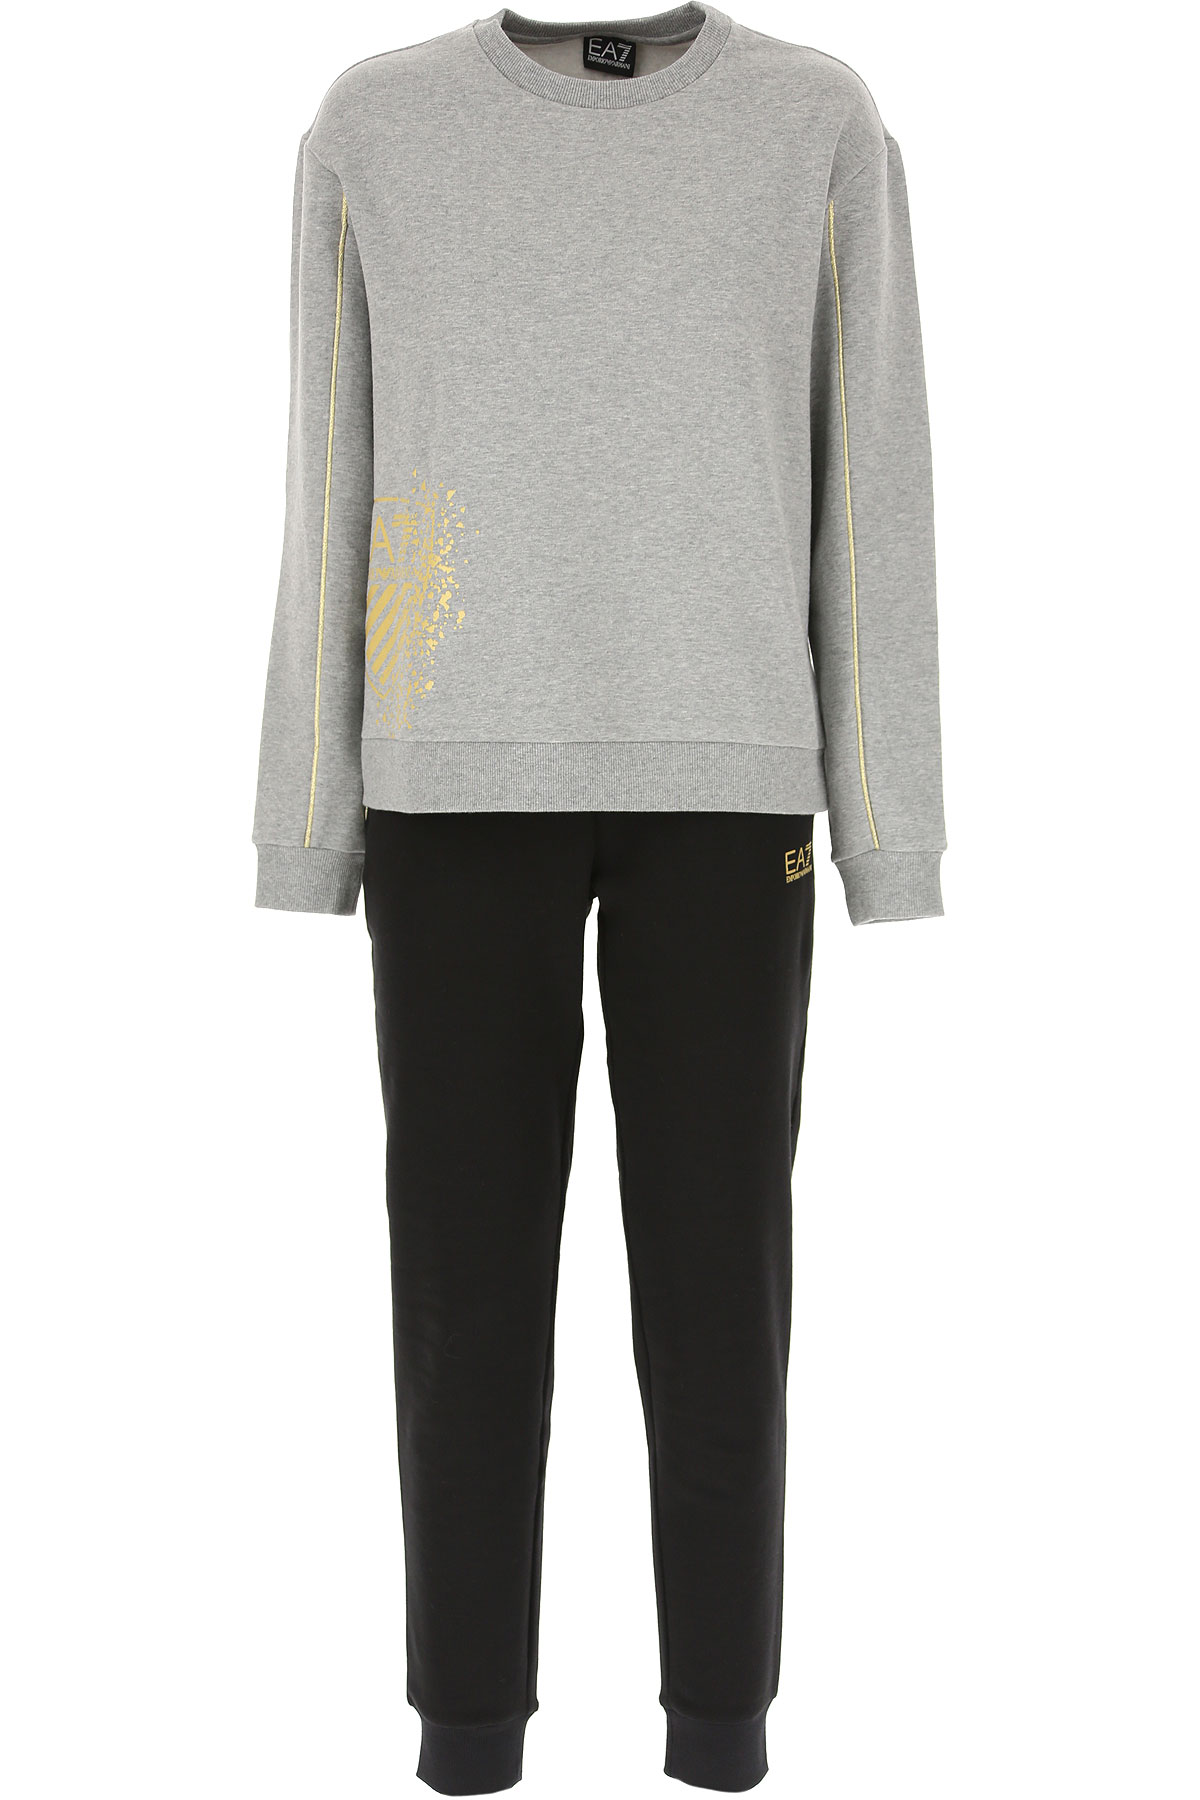 Emporio Armani Women's Sportswear for Gym Workouts and Running On Sale in Outlet, Grey Melange, Cotton, 2019, 2 6